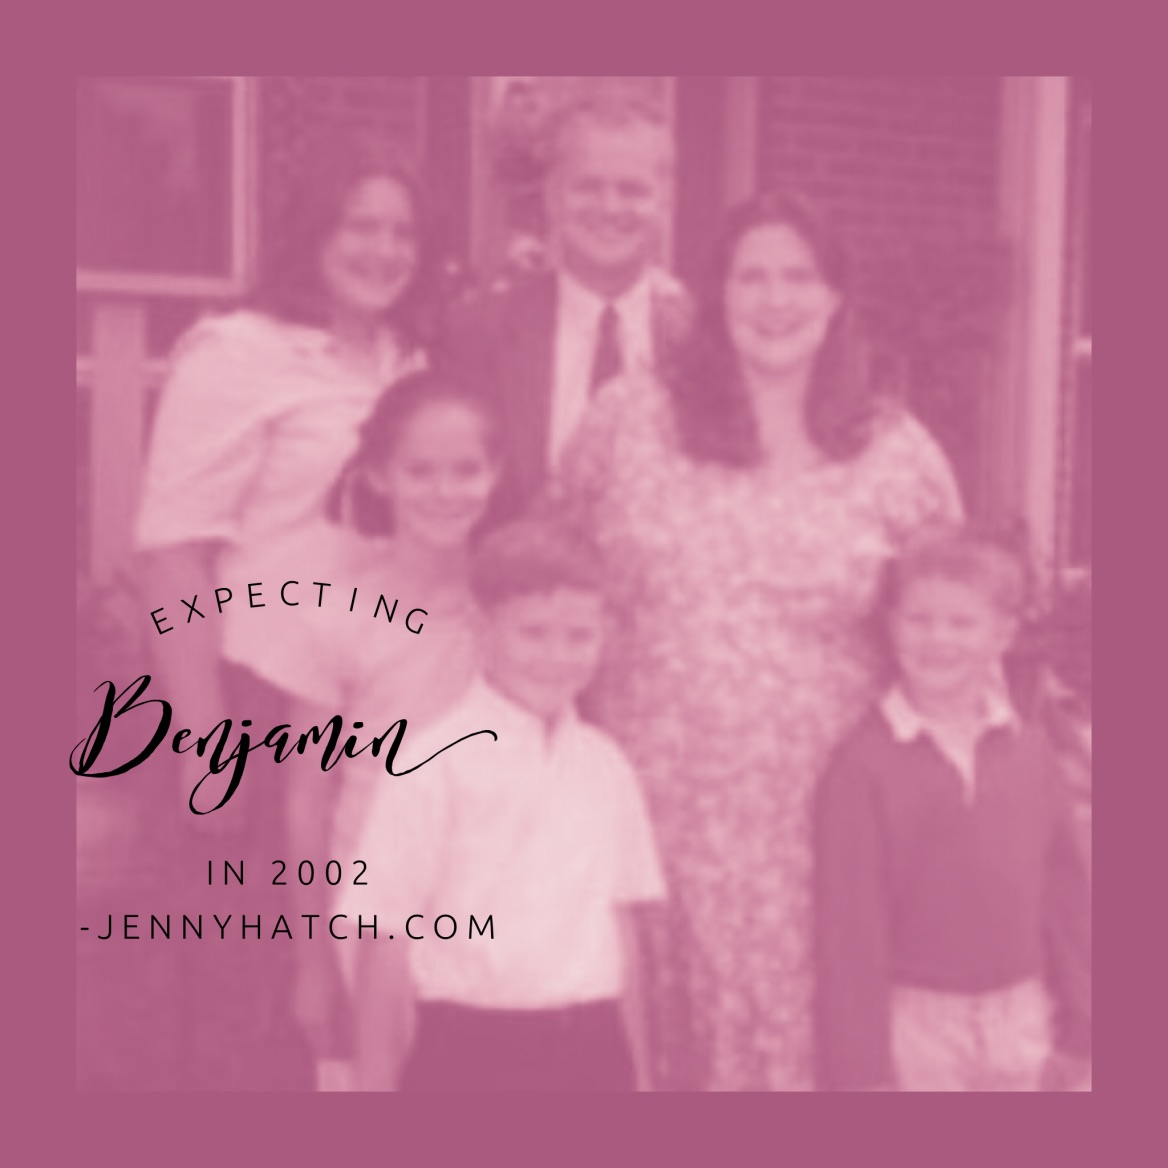 Natural Family BLOG, online journal written by Jenny Hatch